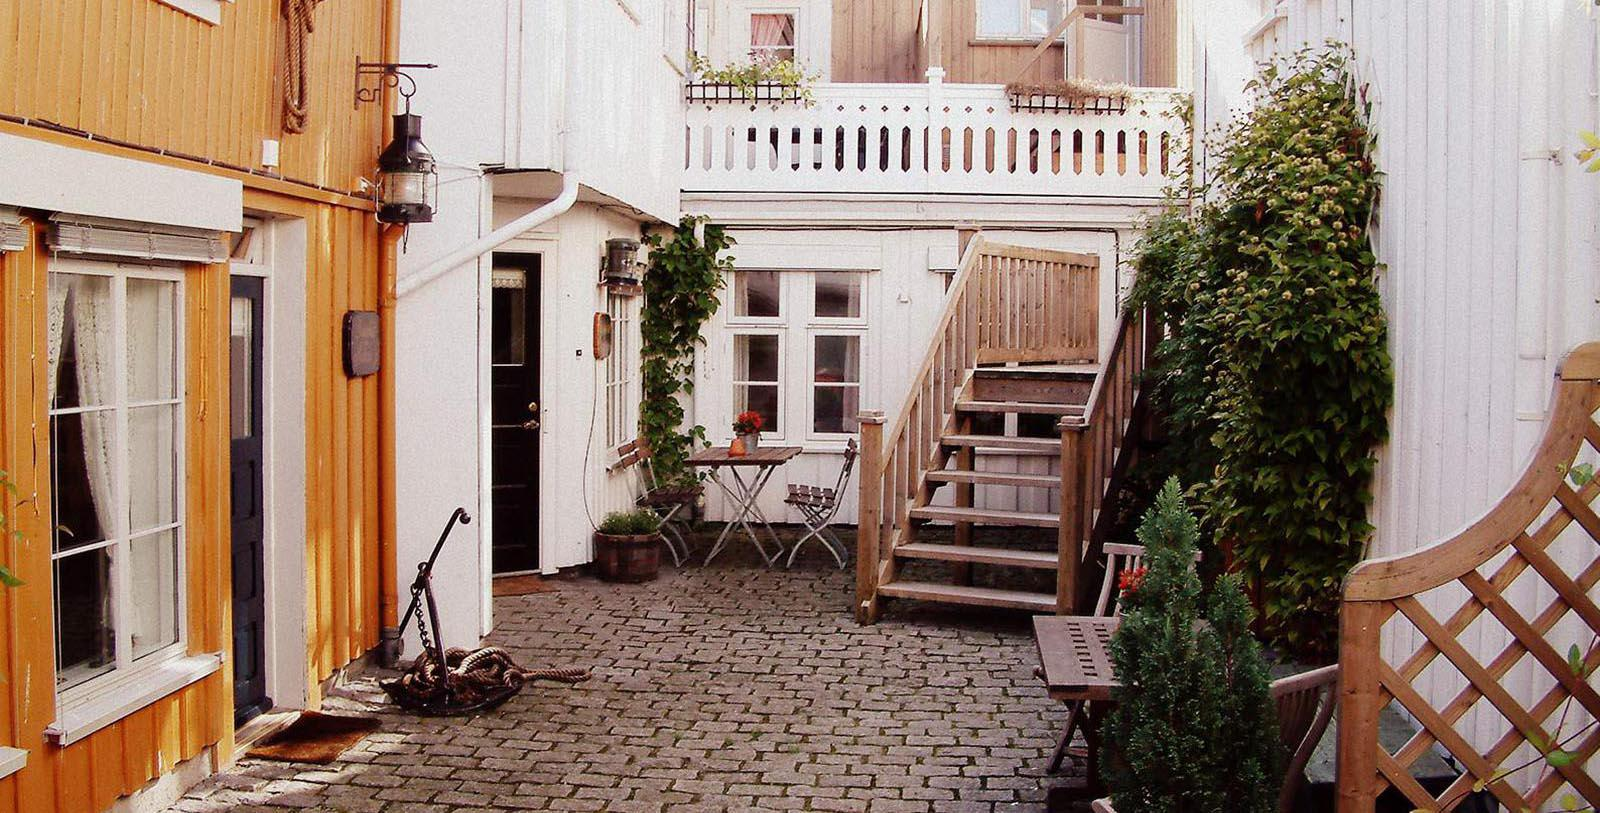 Image of courtyard area outside Det Lille Hotel, 1750, Member of Historic Hotels Worldwide, Risør, Norway, Overview